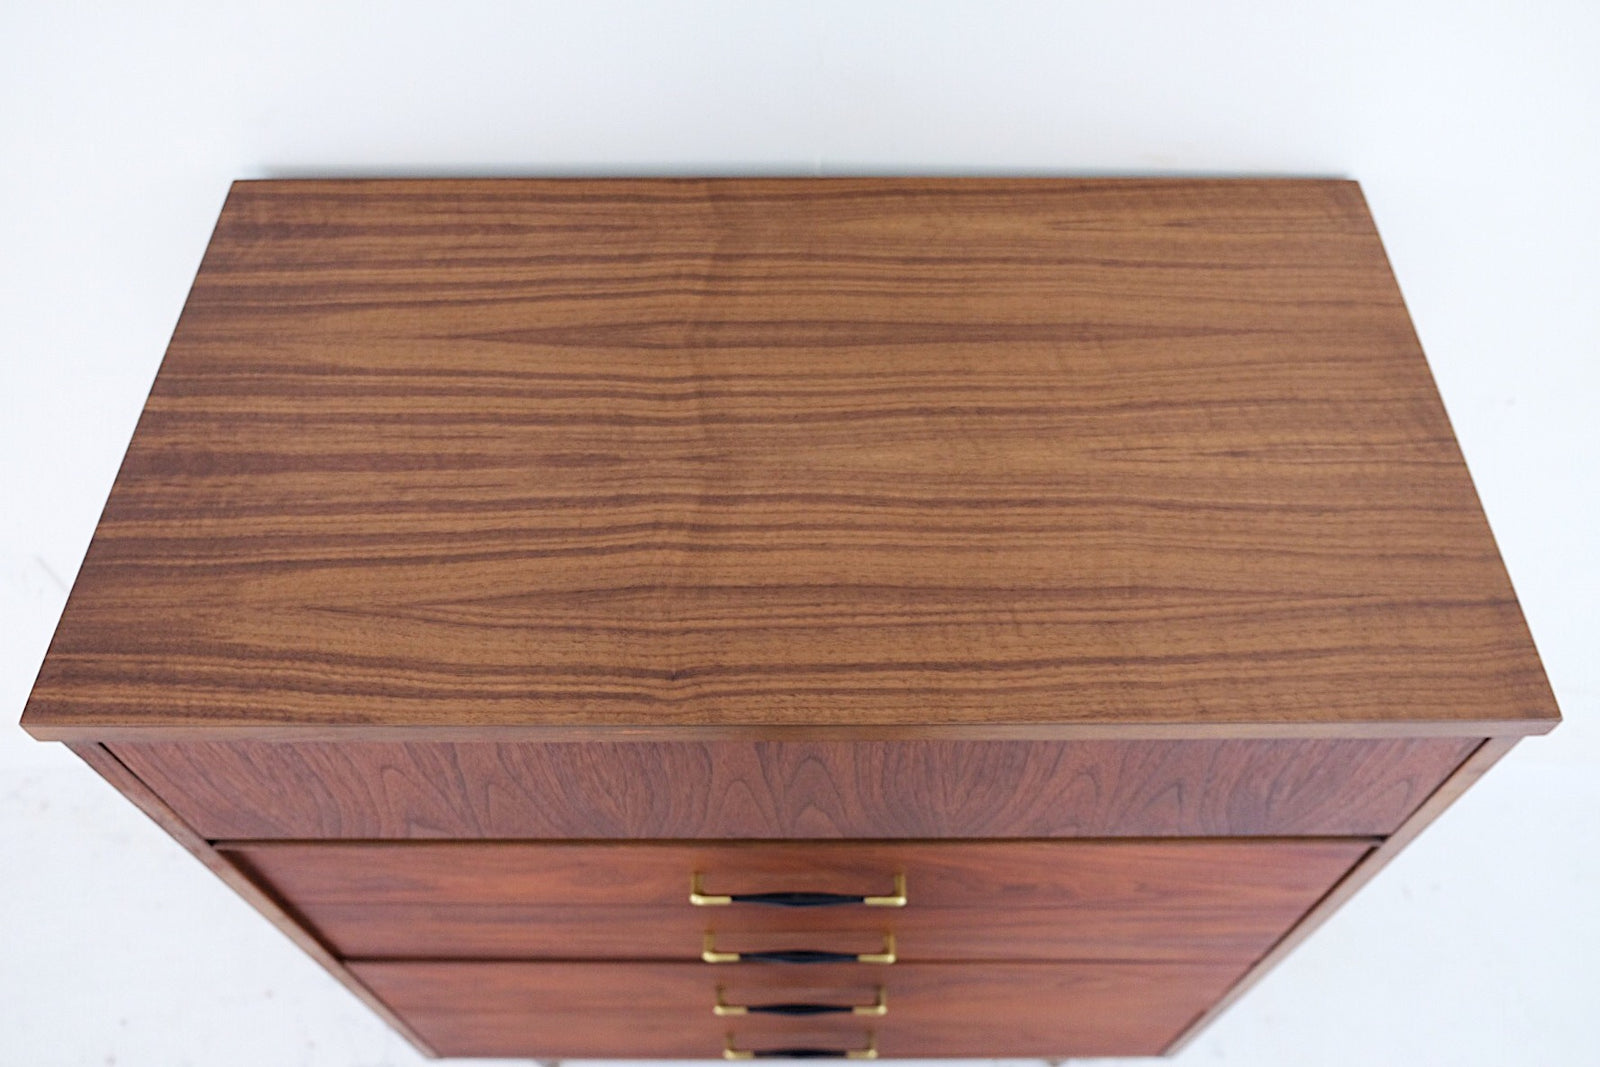 Mid Century Modern Tall Dresser Four Drawers New Cherry Veneer Top, Beautiful Black and Brass Handles